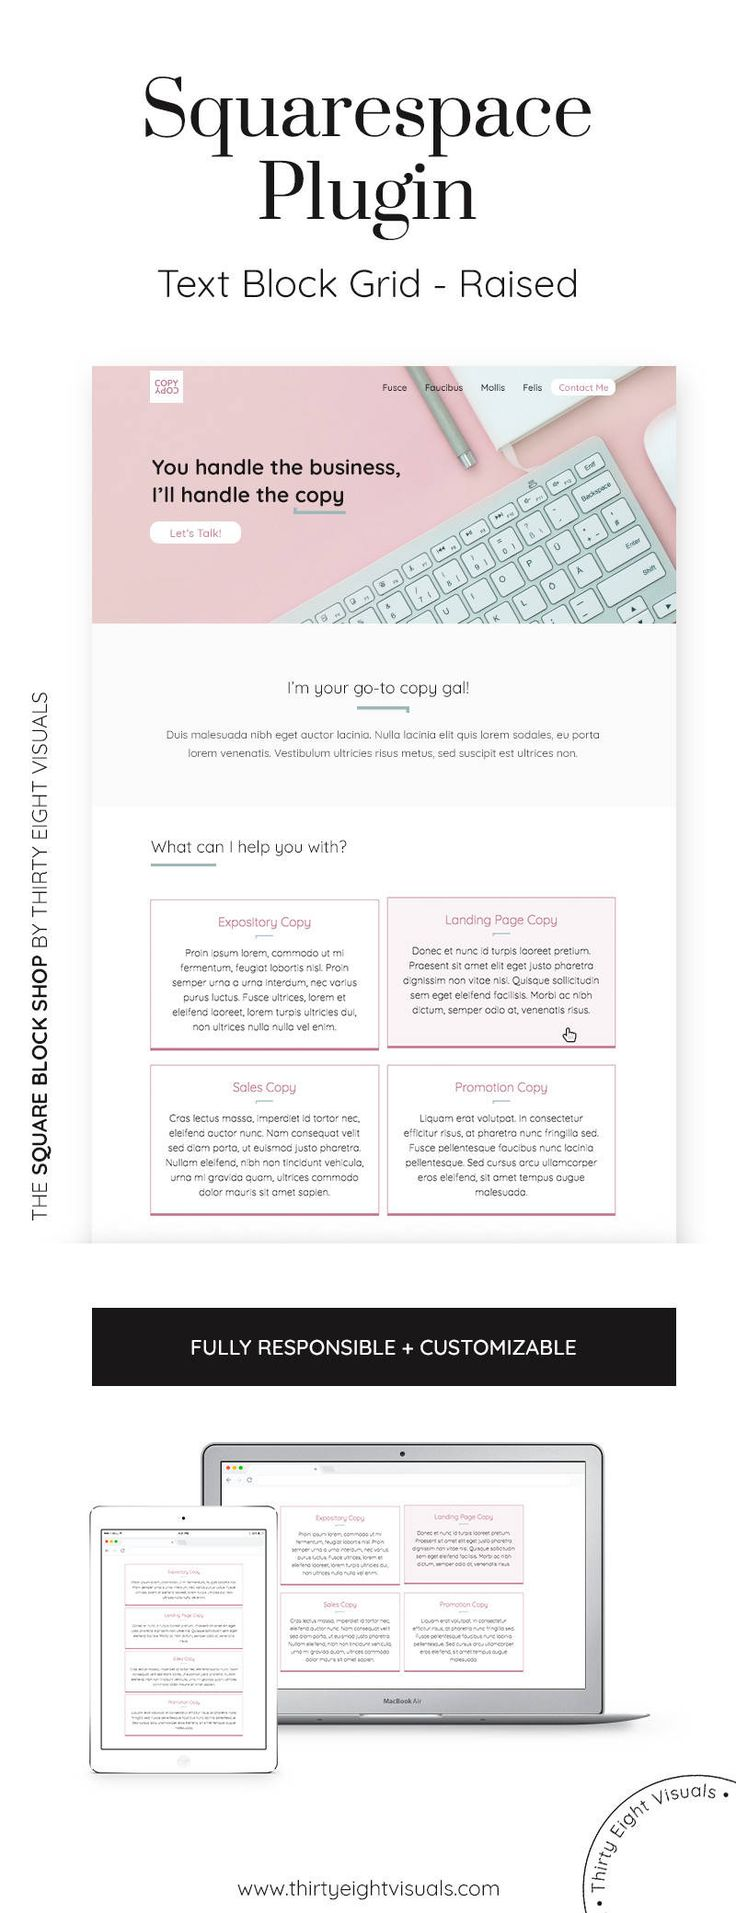 Squarespace plugin - Get this 4-block responsive text grid to display your services on your Squarespace website and stand out! Take a look